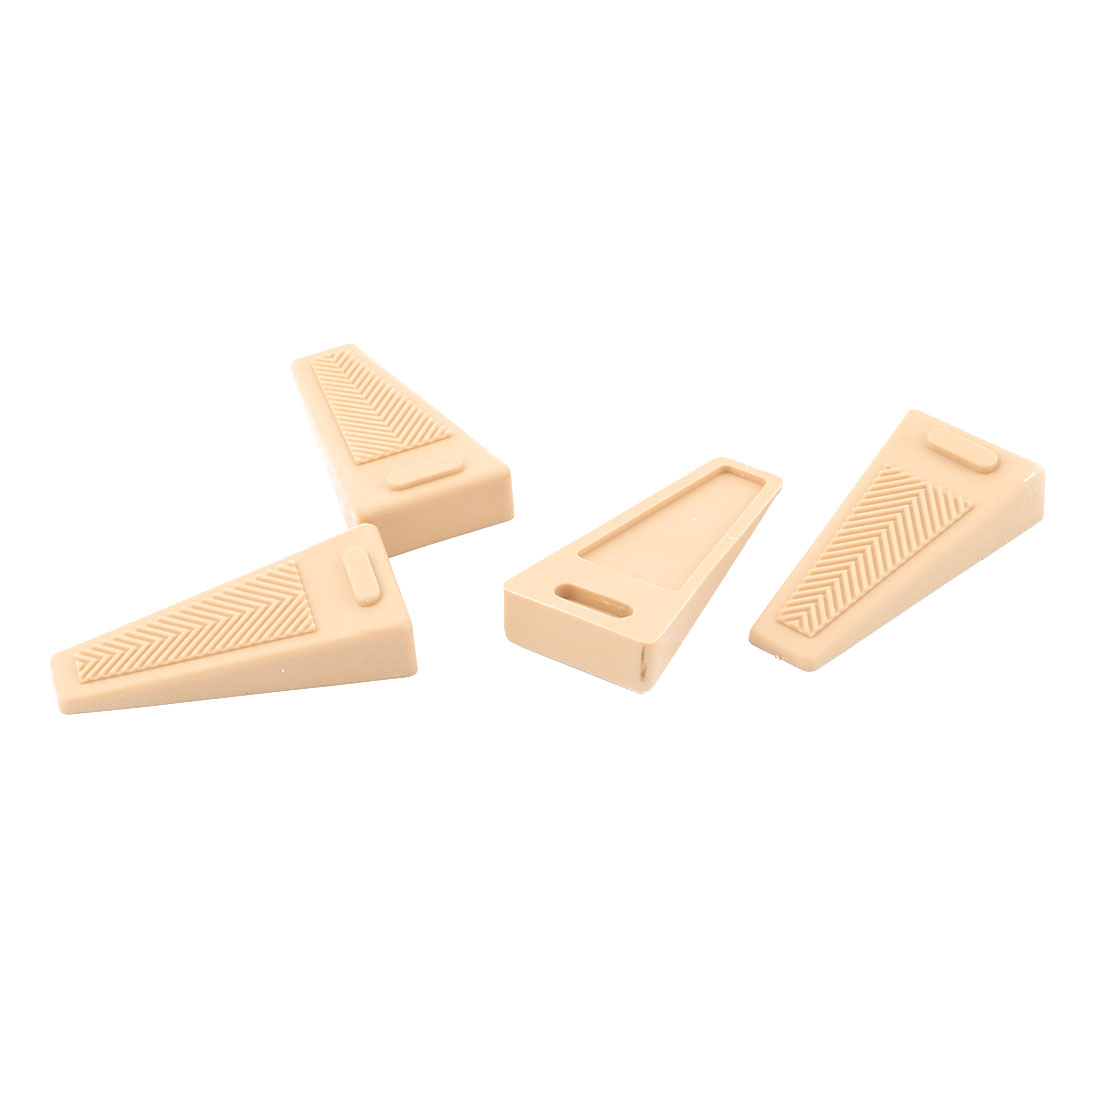 Home Office Rubber Finger Safety Protector Door Wedge Holder Stopper Khaki 4 Pcs